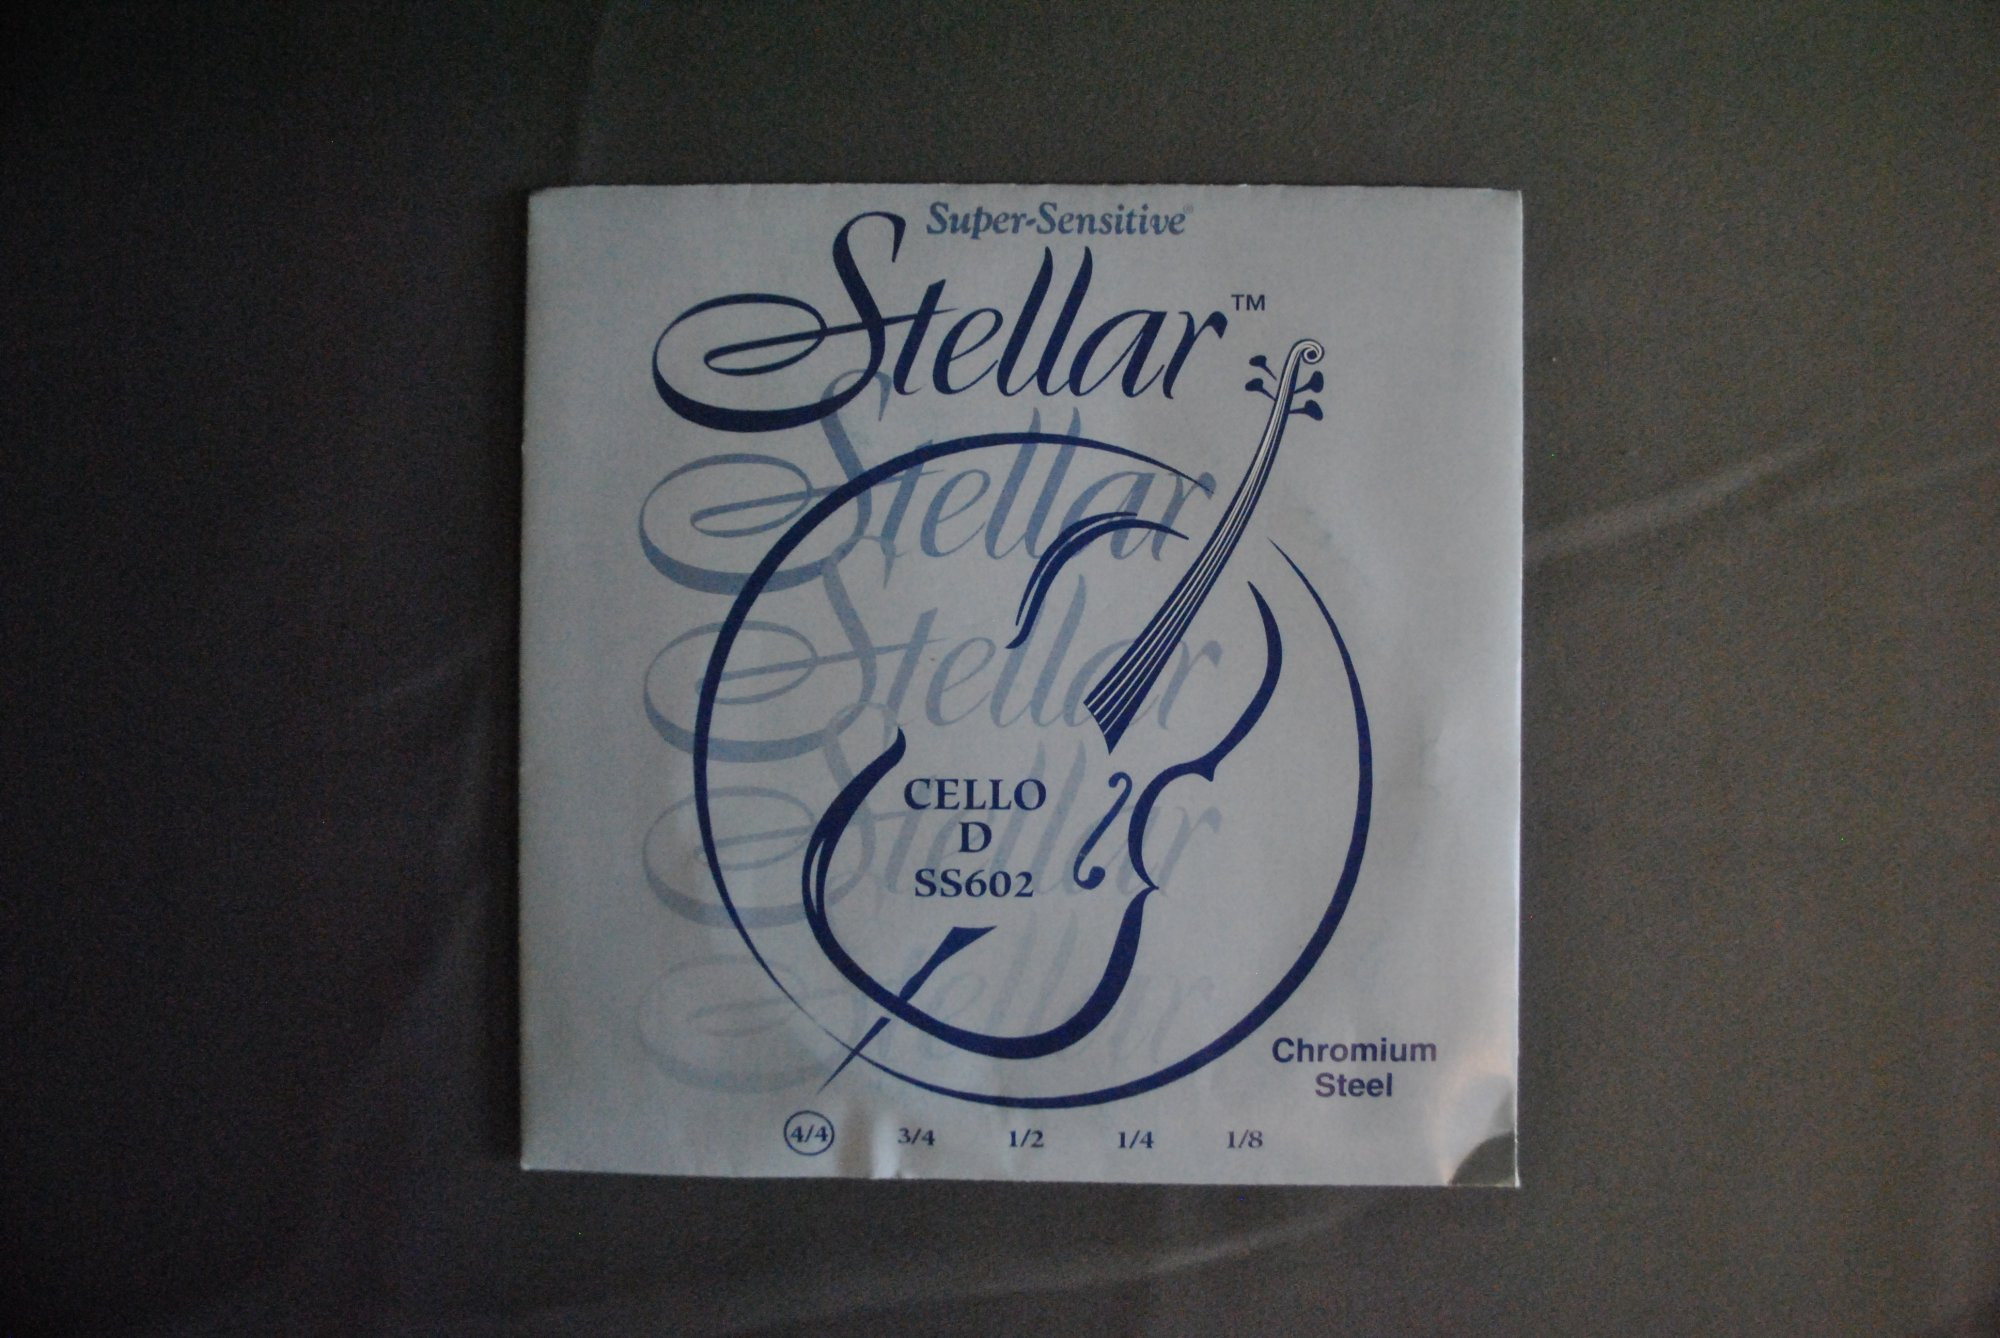 Super-Sensitive Stellar Chromium Steel 4/4 Cello String, D